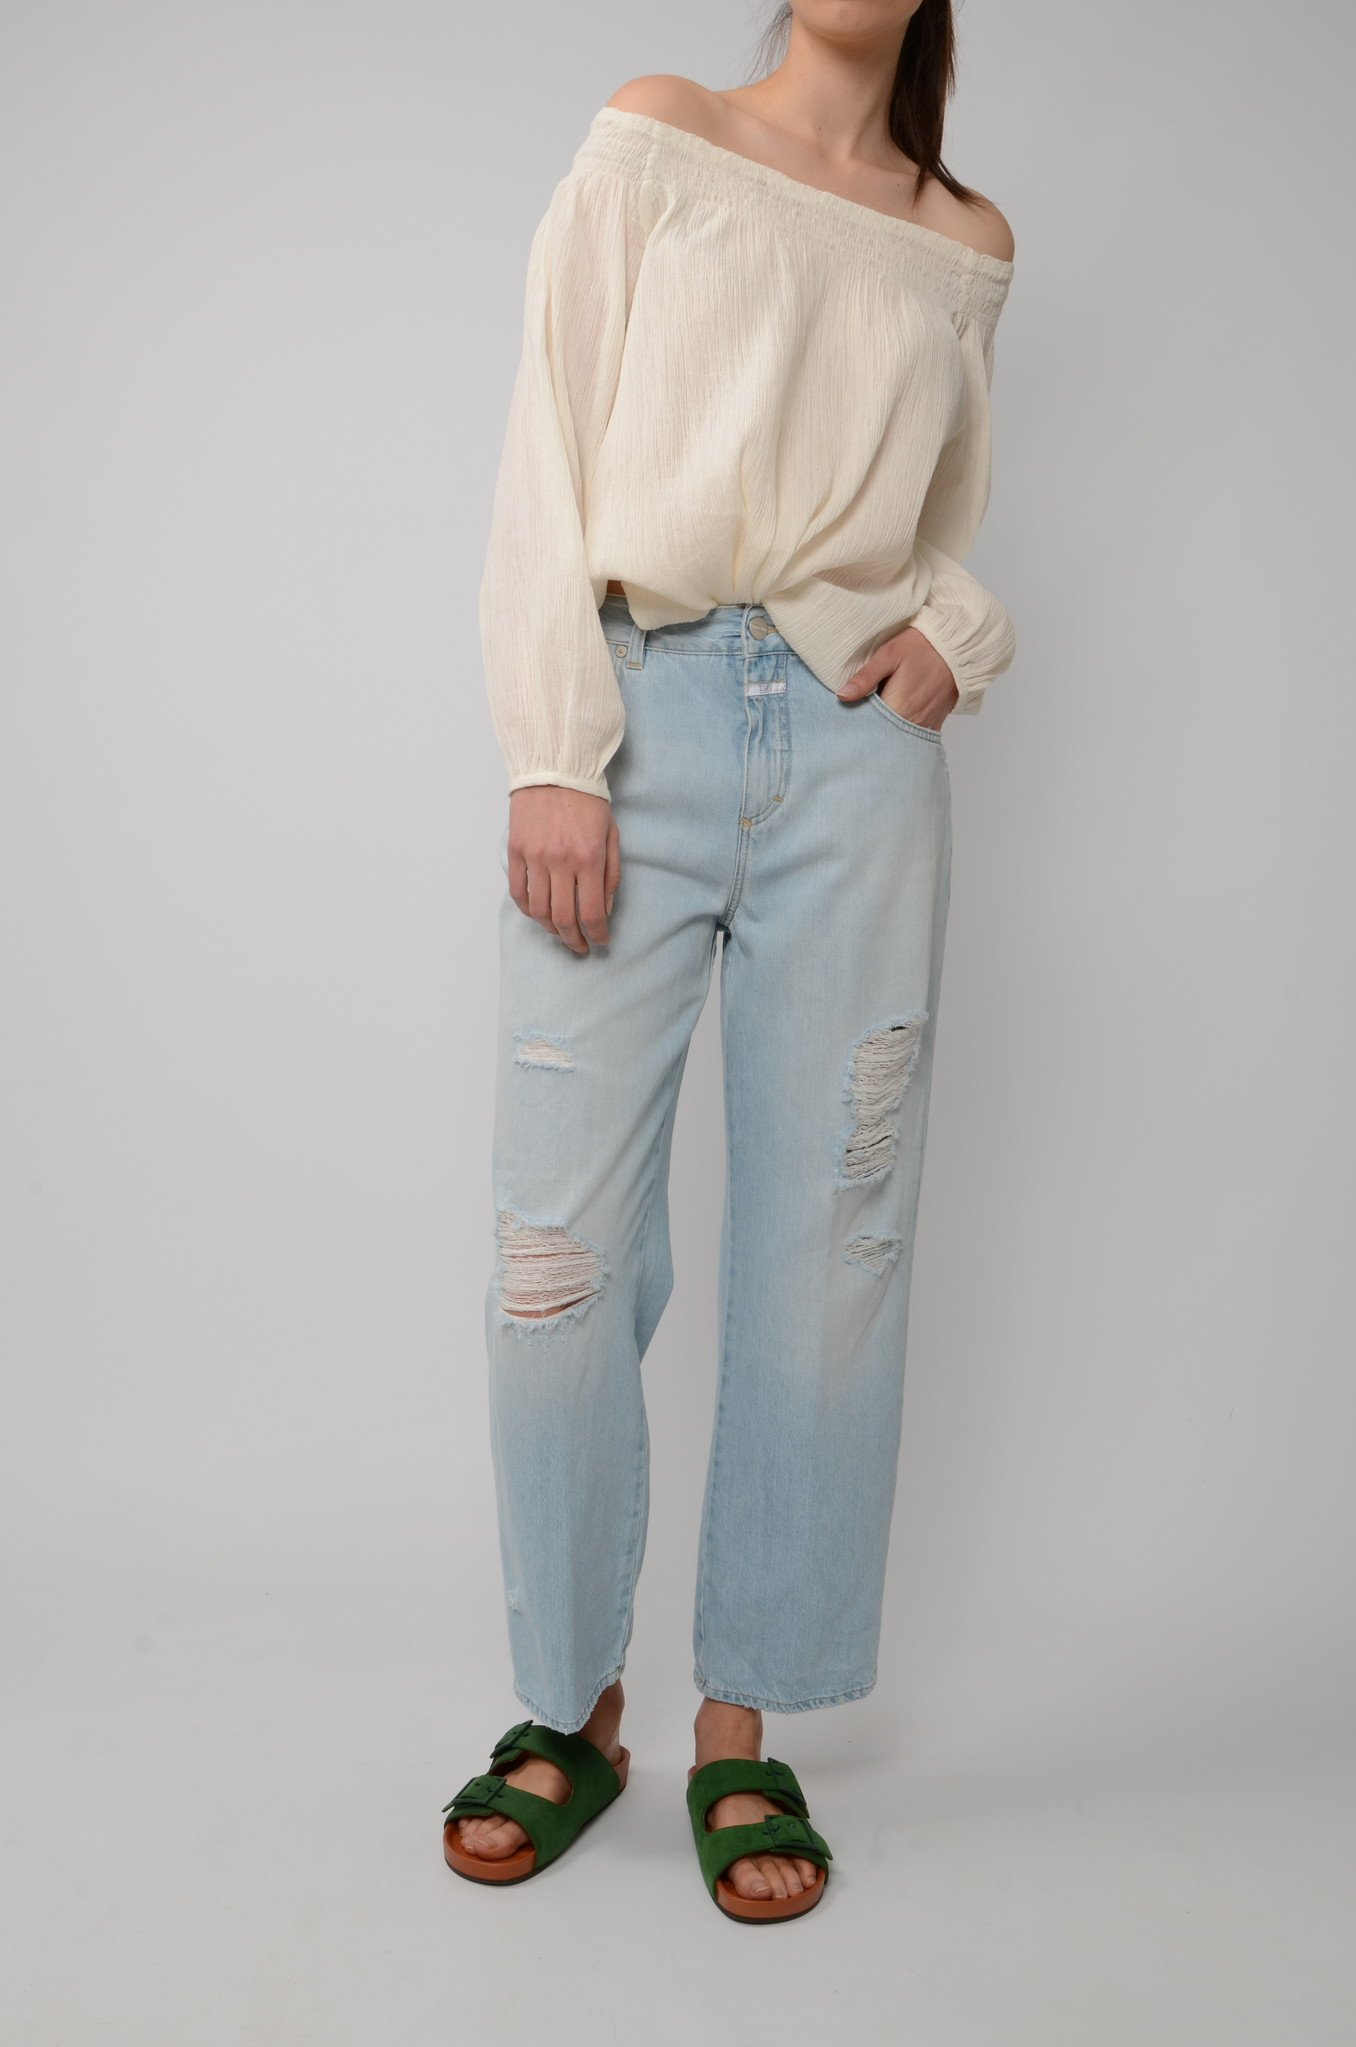 GILL JEANS-5